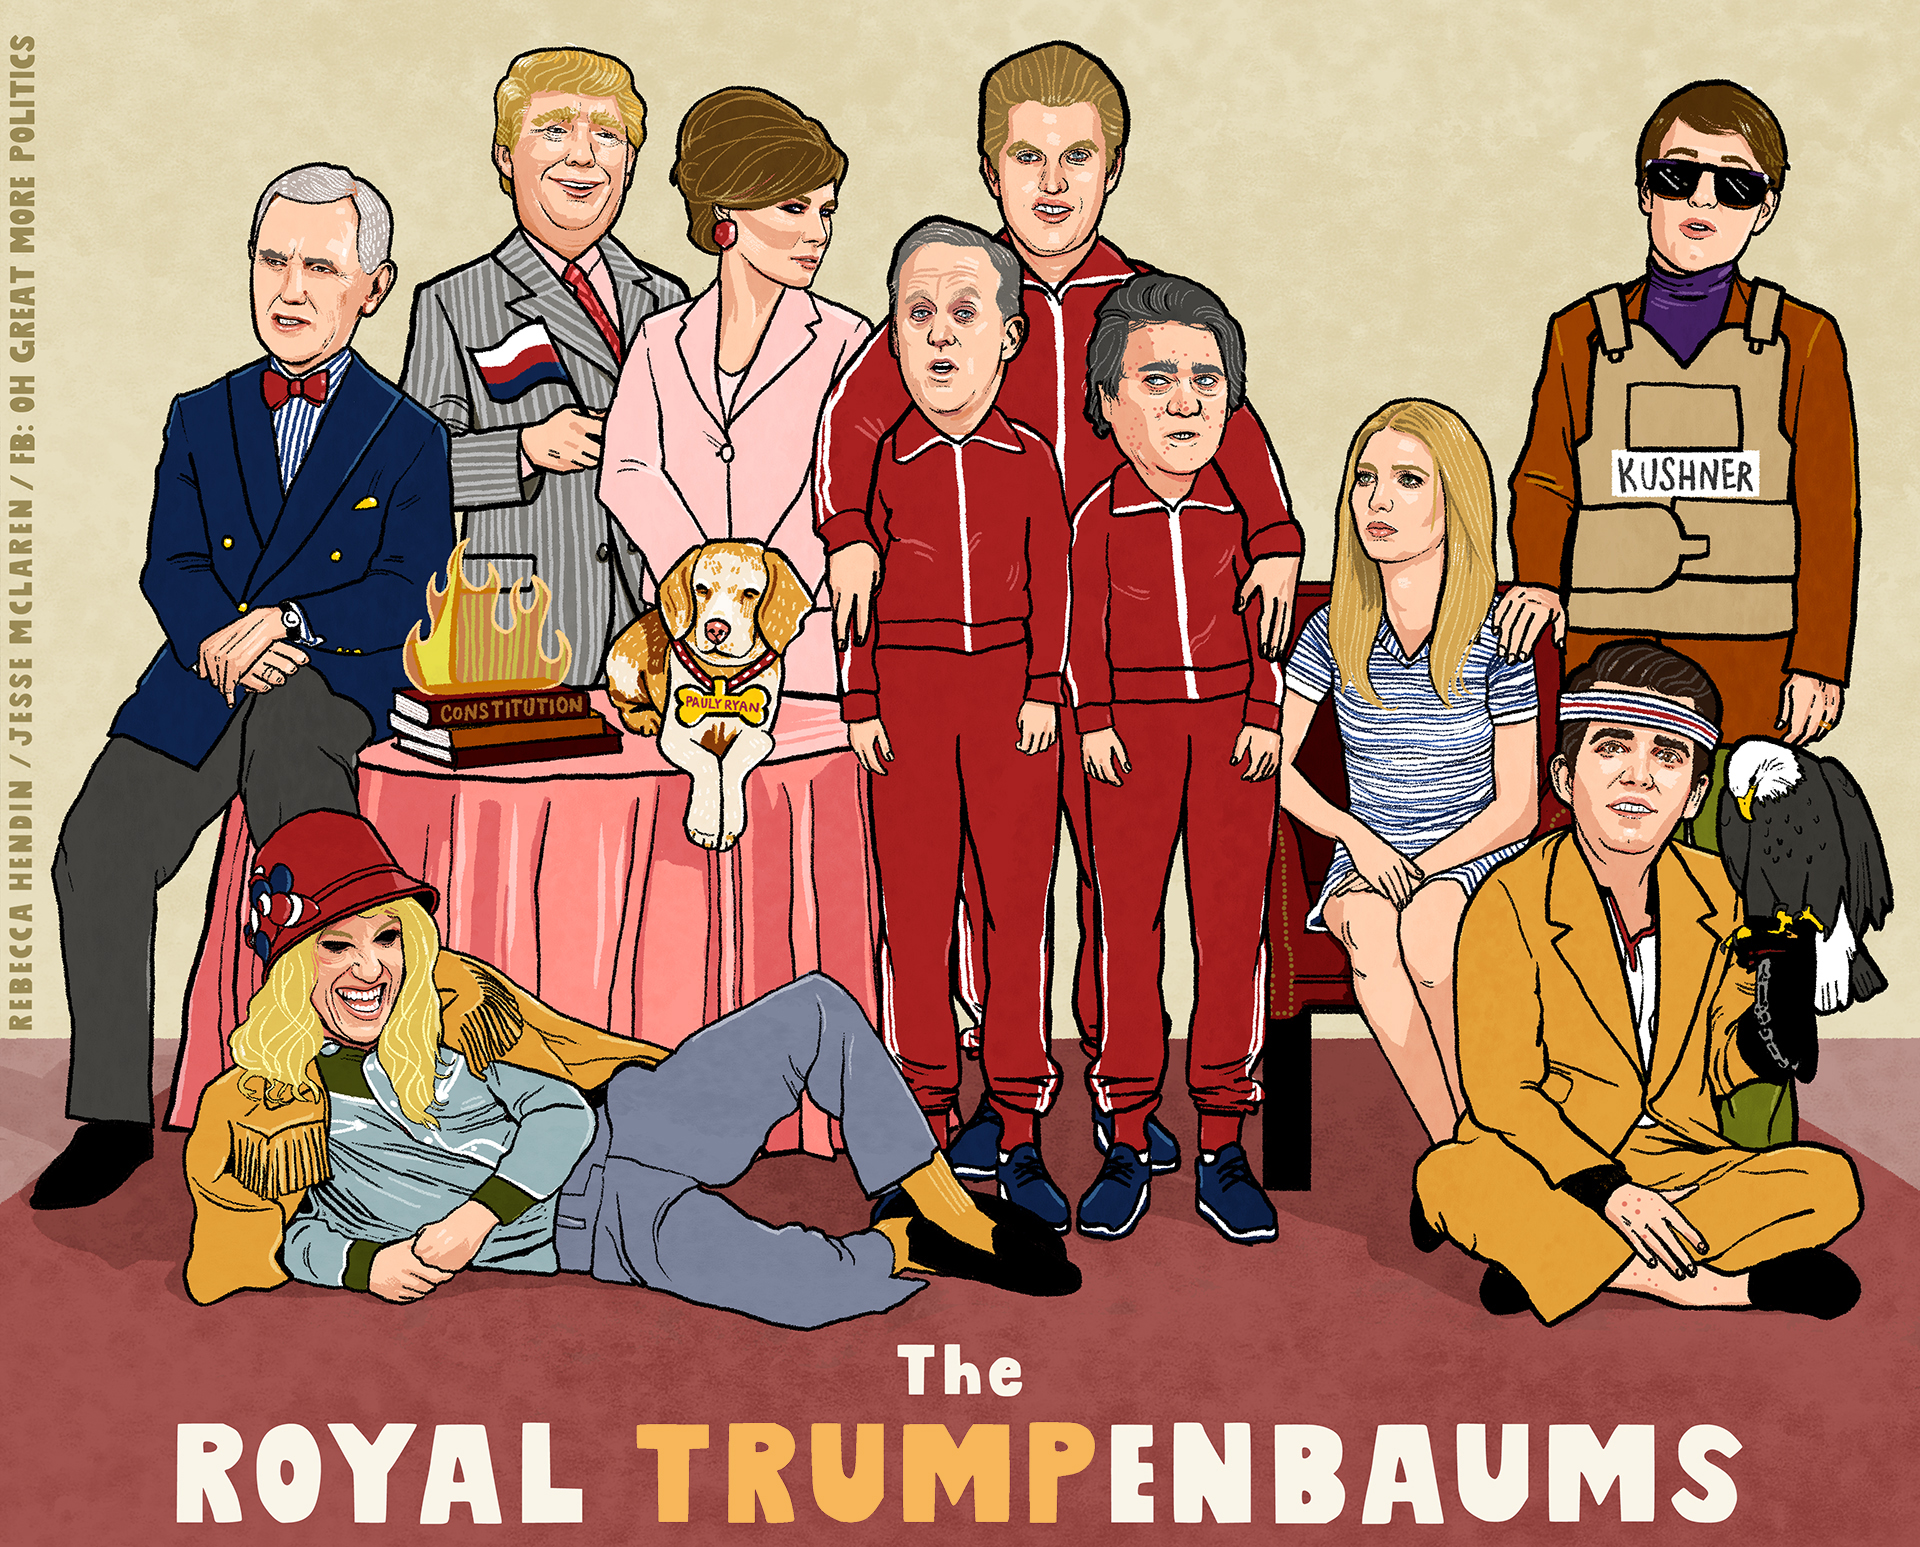 rebecca-hendin-jesse-mclaren-trumpenbaums-cartoon-buzzfeed-2H-FINAL-1920